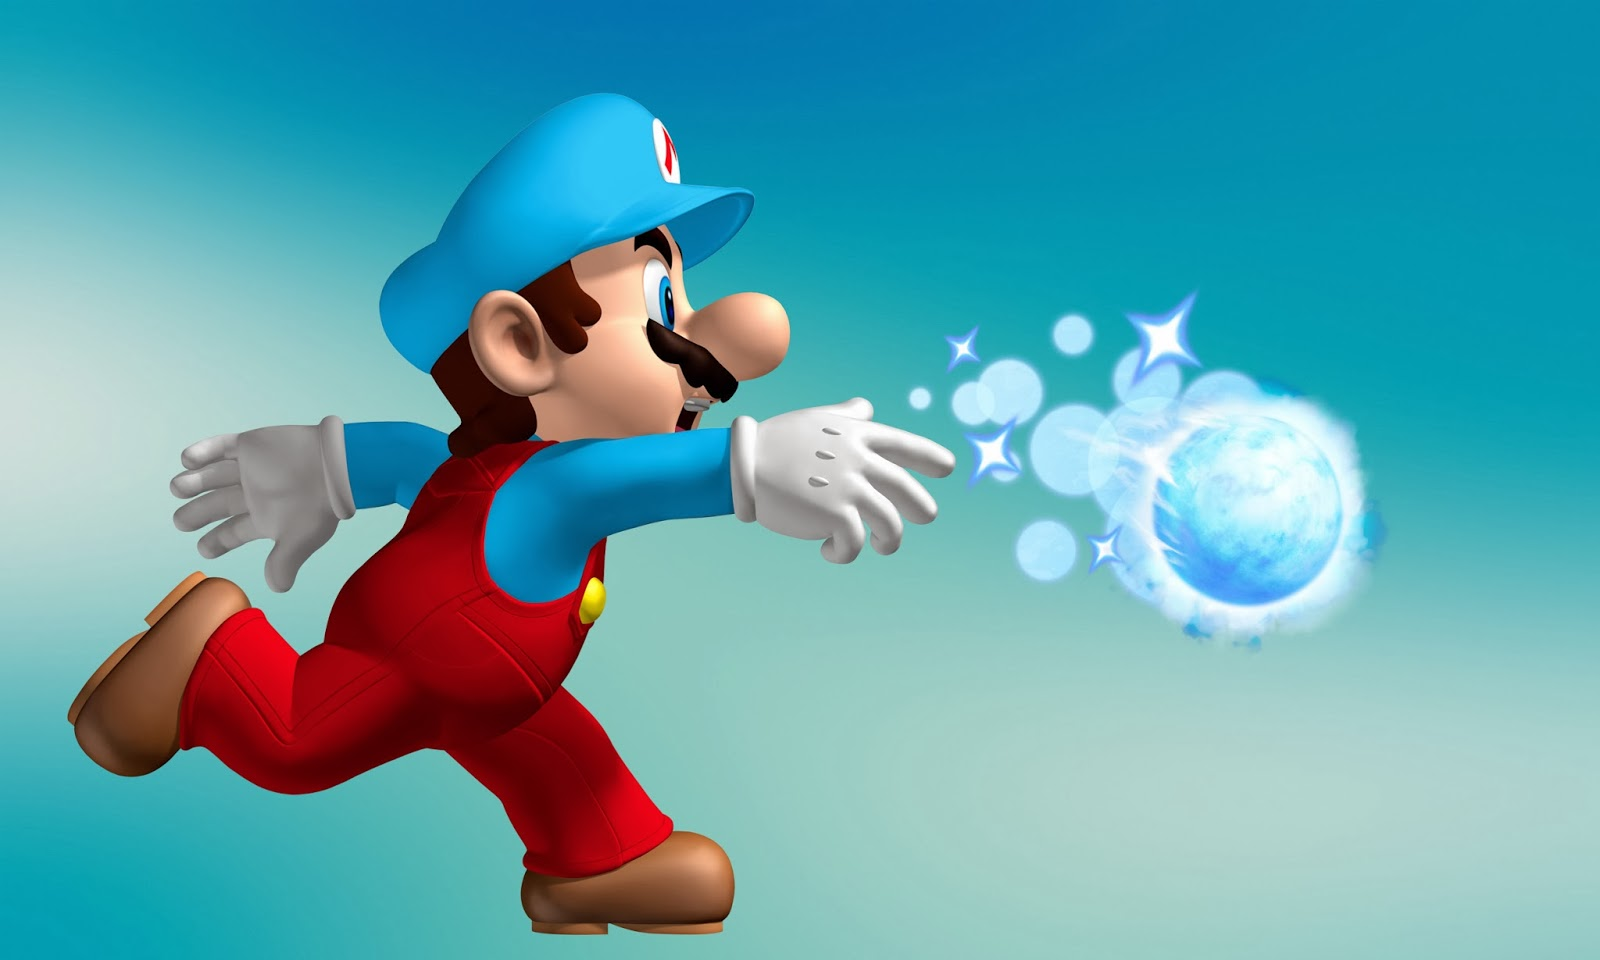 mario wallpaper hd